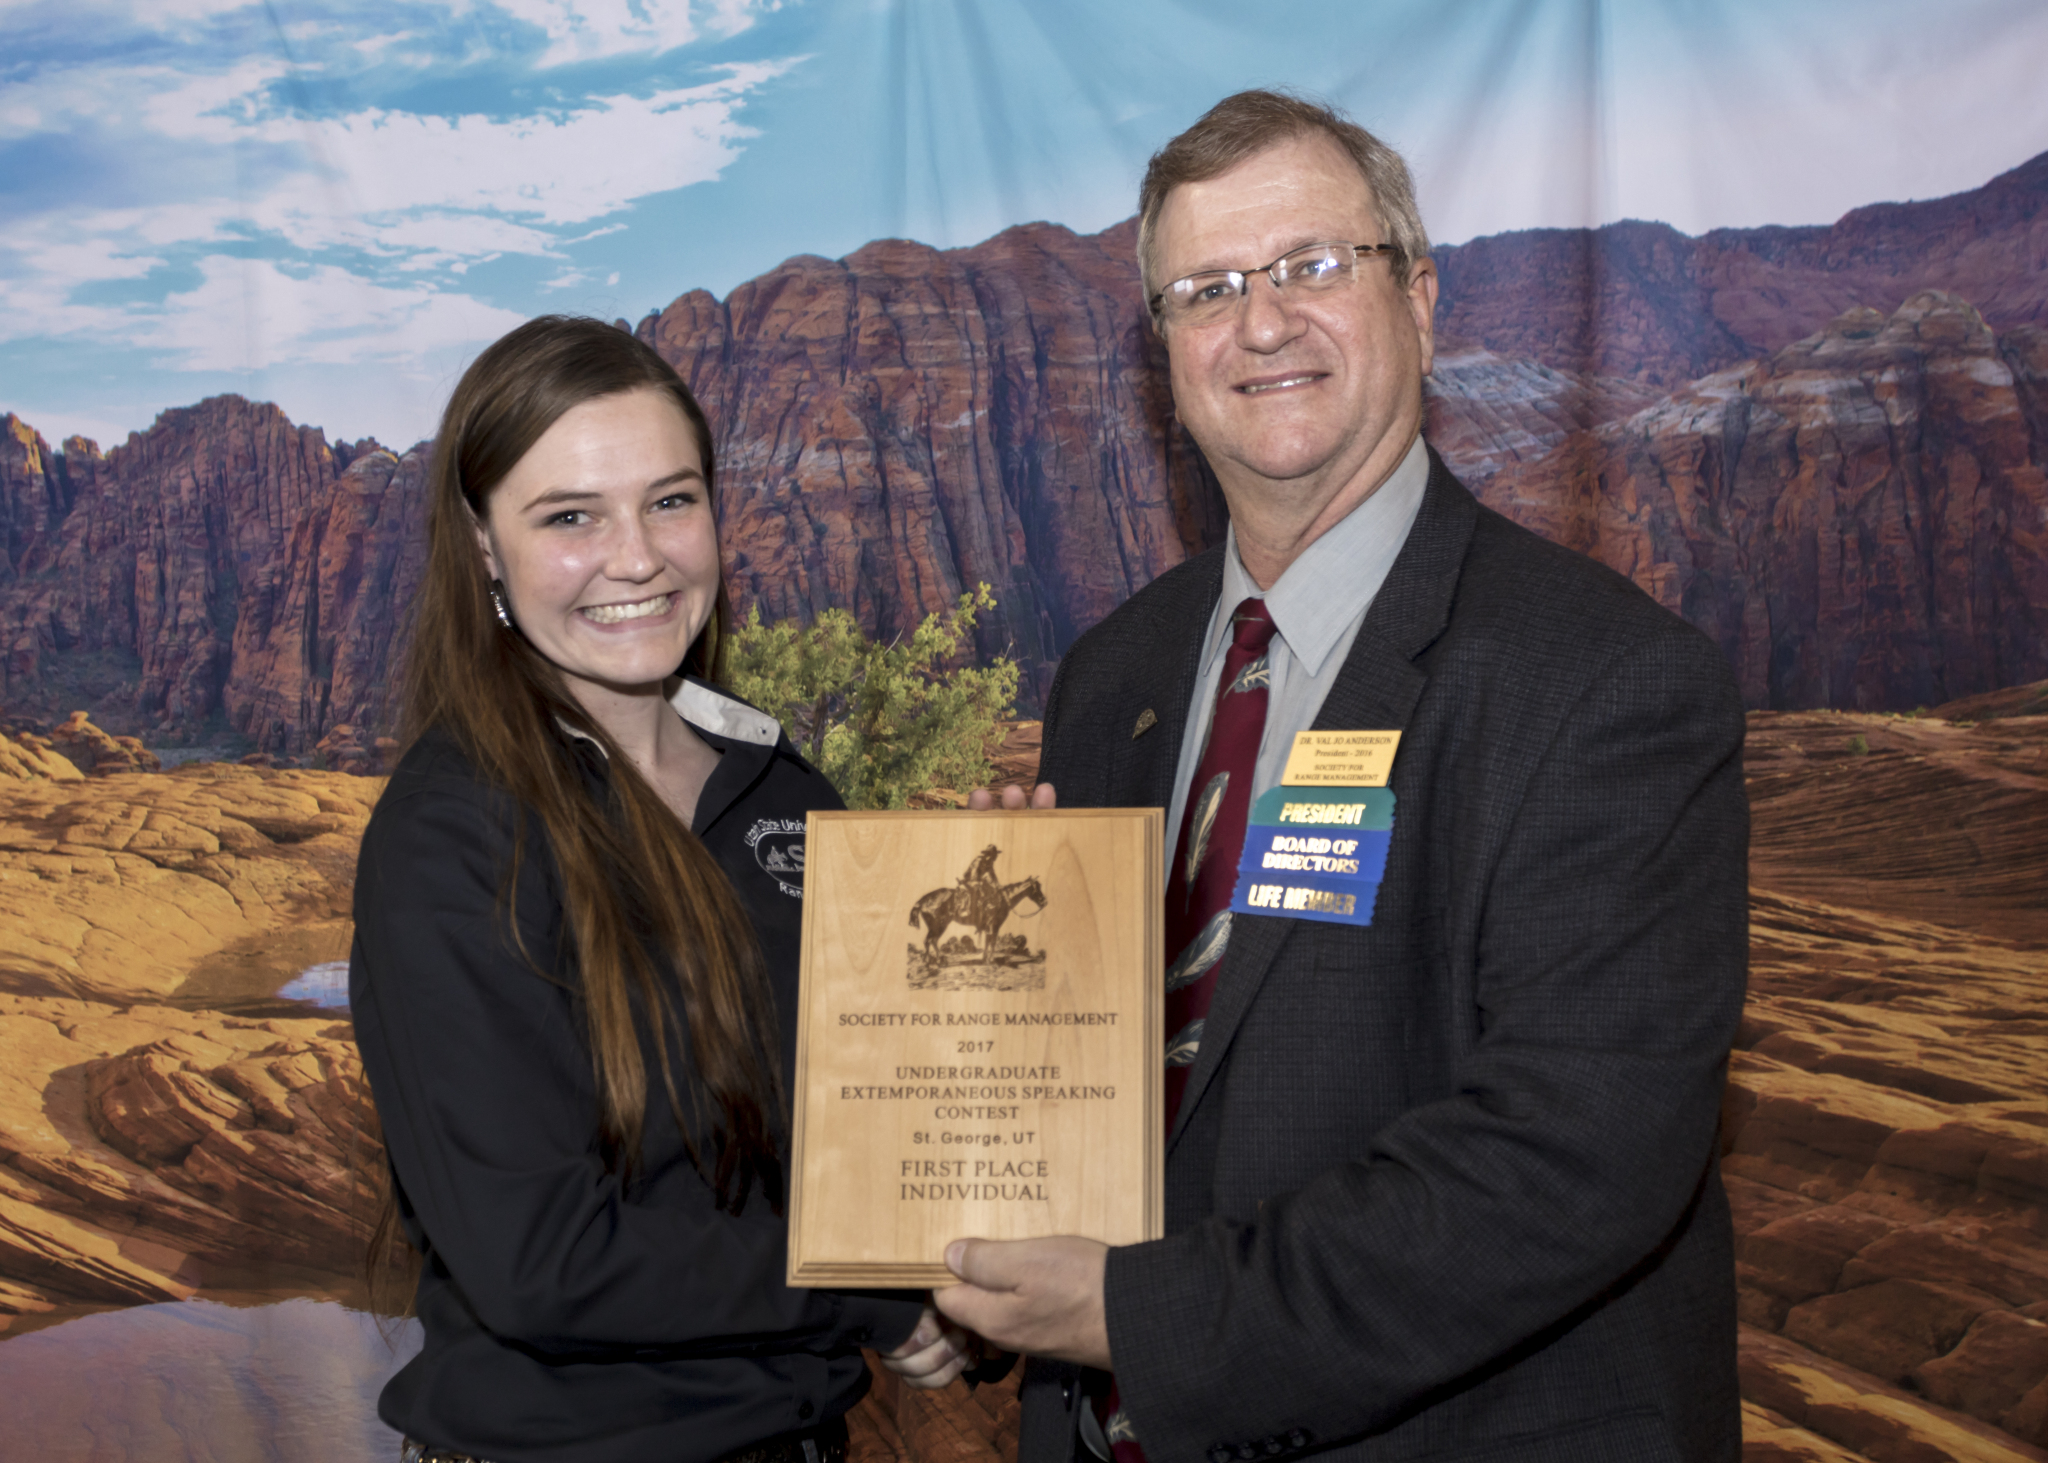 CAAS Student Competes at 70th Annual Society for Range Management Conference